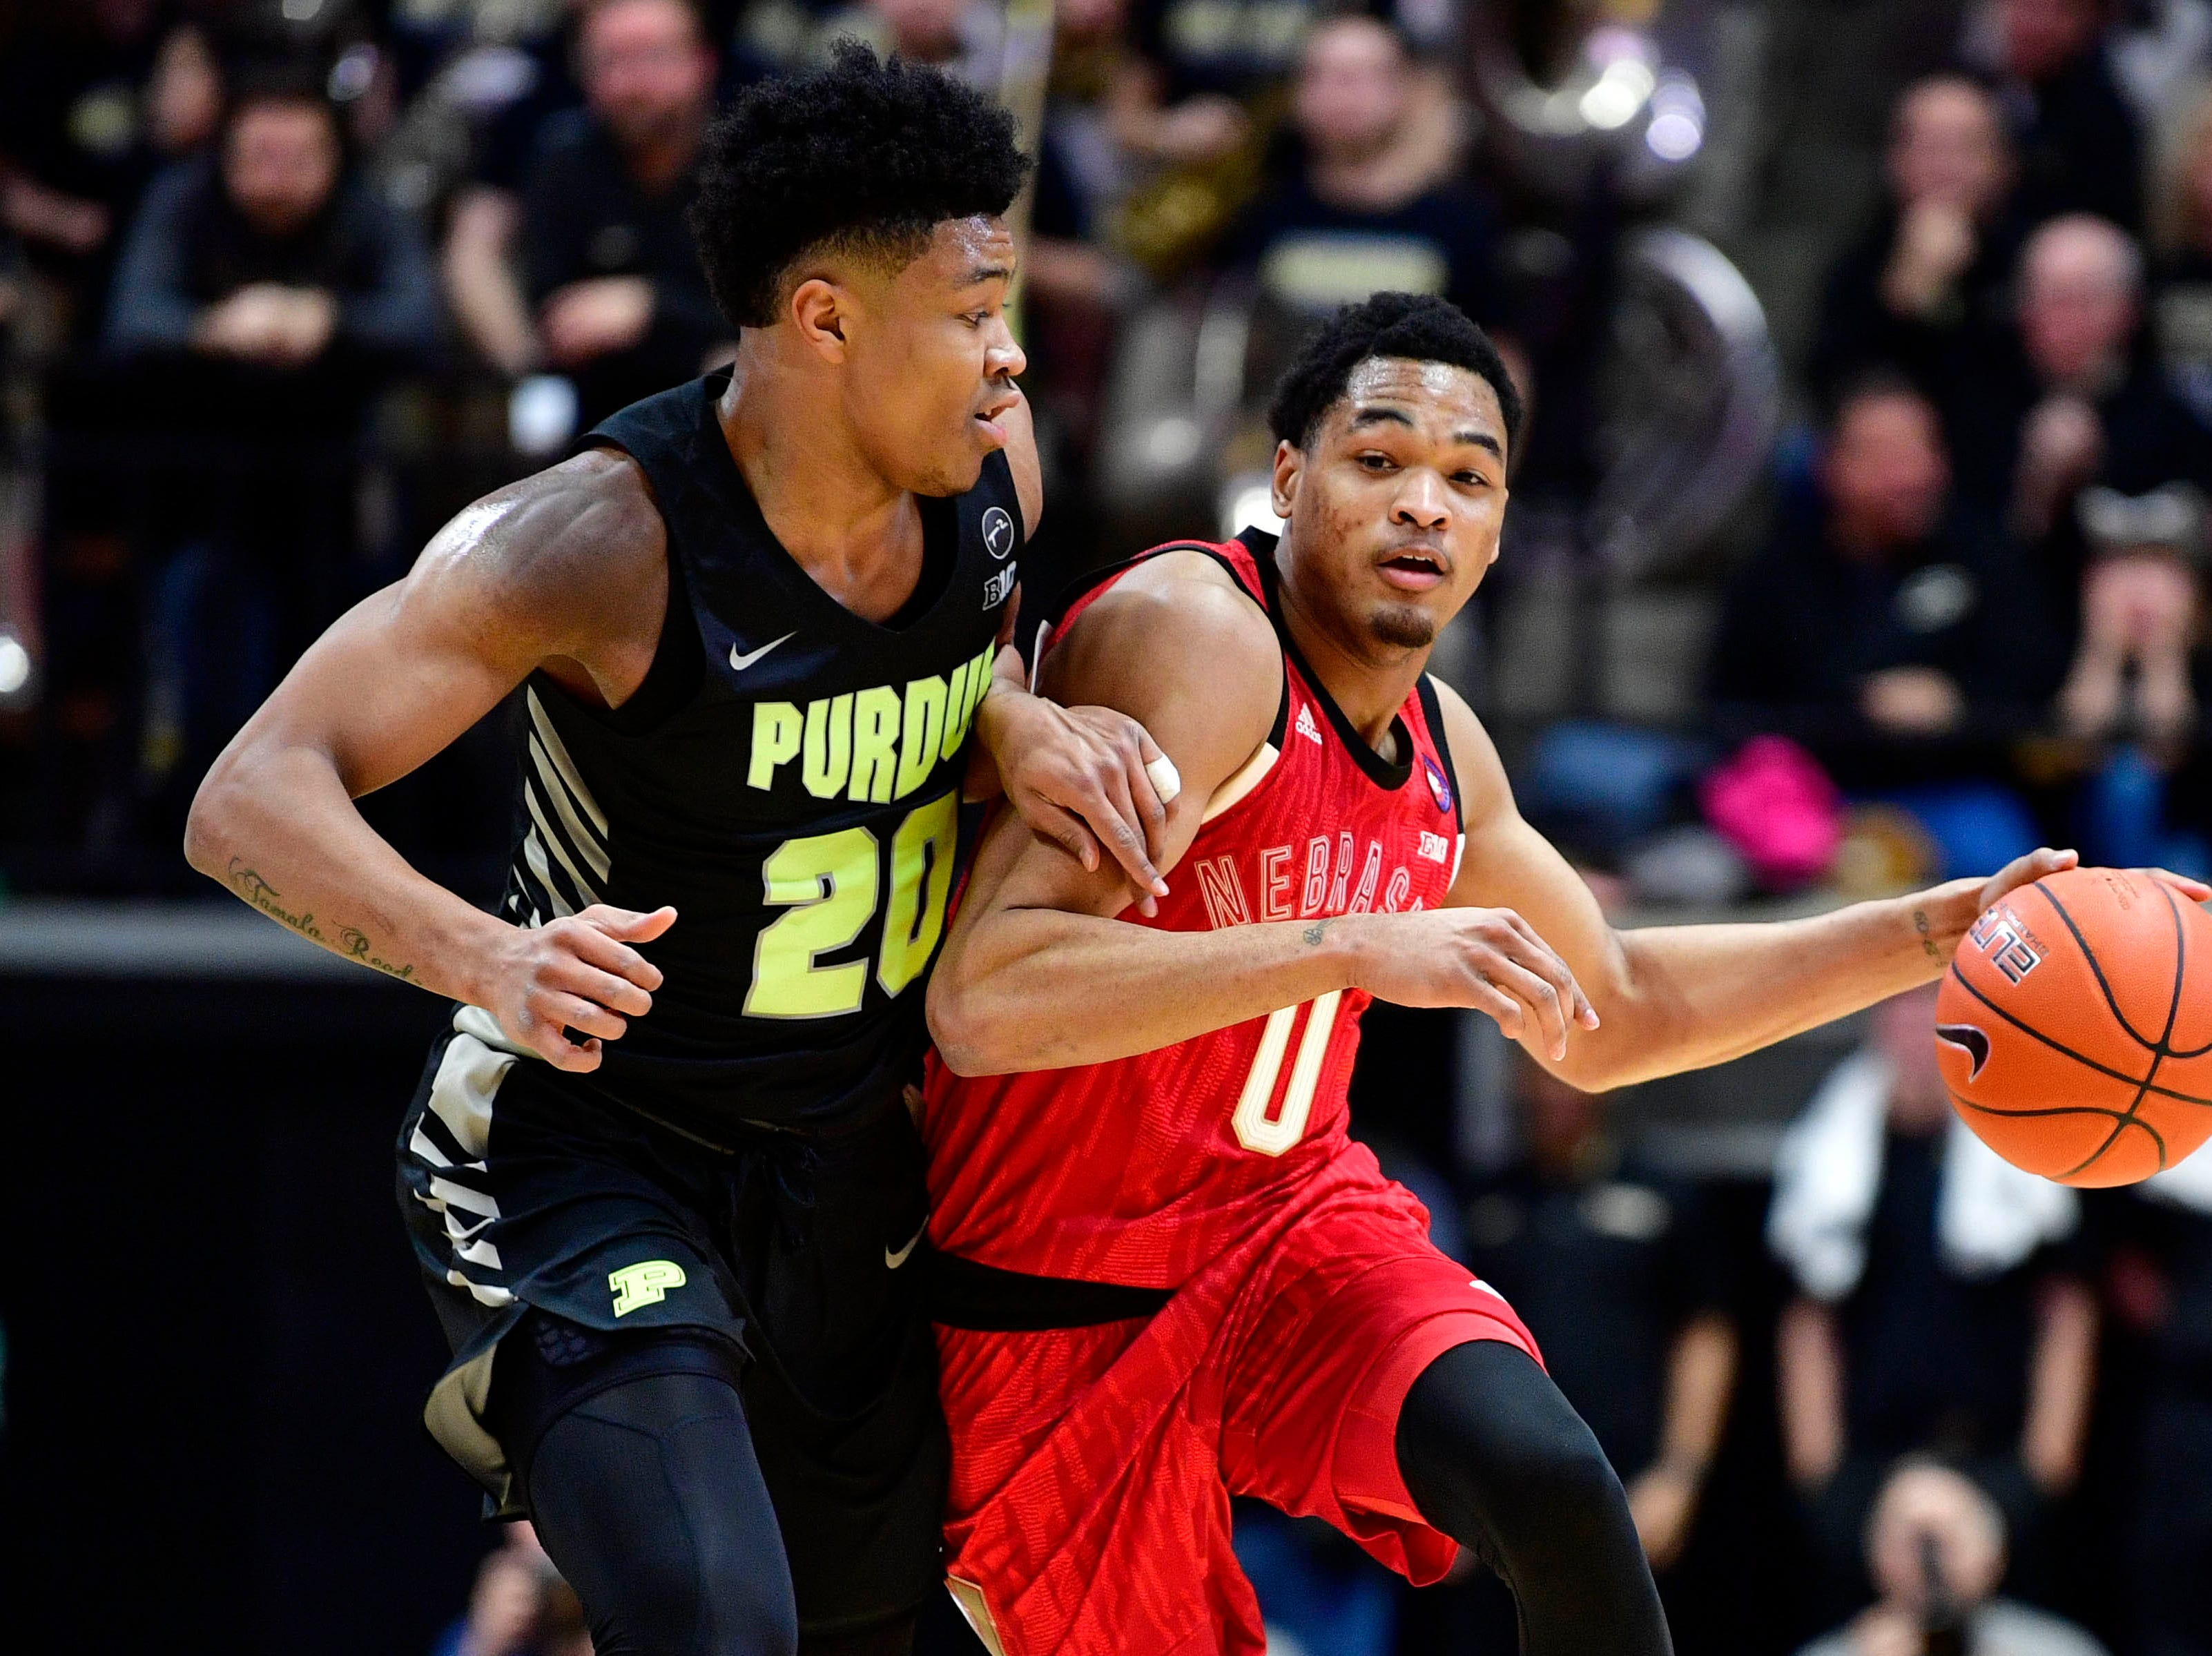 Nebraska Cornhuskers guard James Palmer Jr. (0) drives the ball down court against Purdue Boilermakers guard Nojel Eastern (20) during the first half of the game at Mackey Arena.